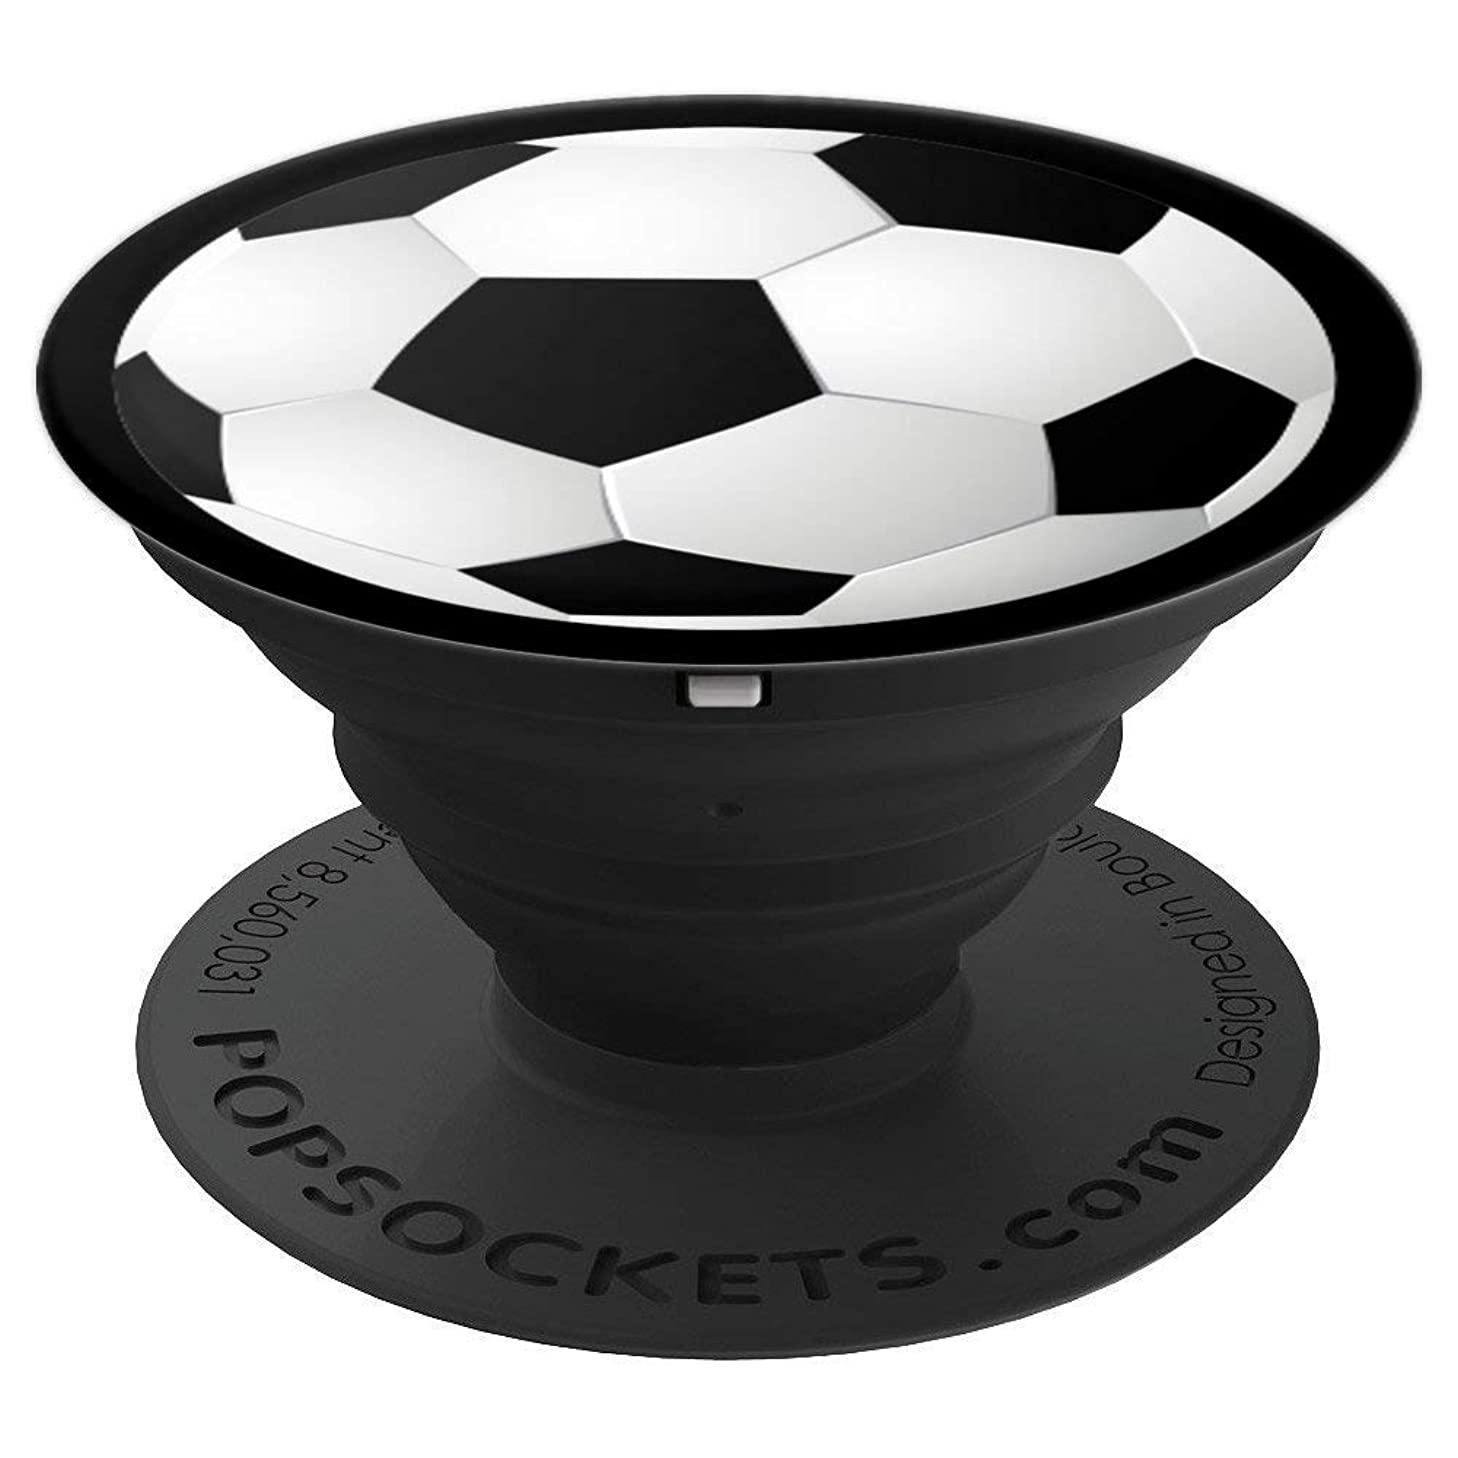 Stylish Soccer Ball for Men, Women and Children - PopSockets Grip and Stand for Phones and Tablets